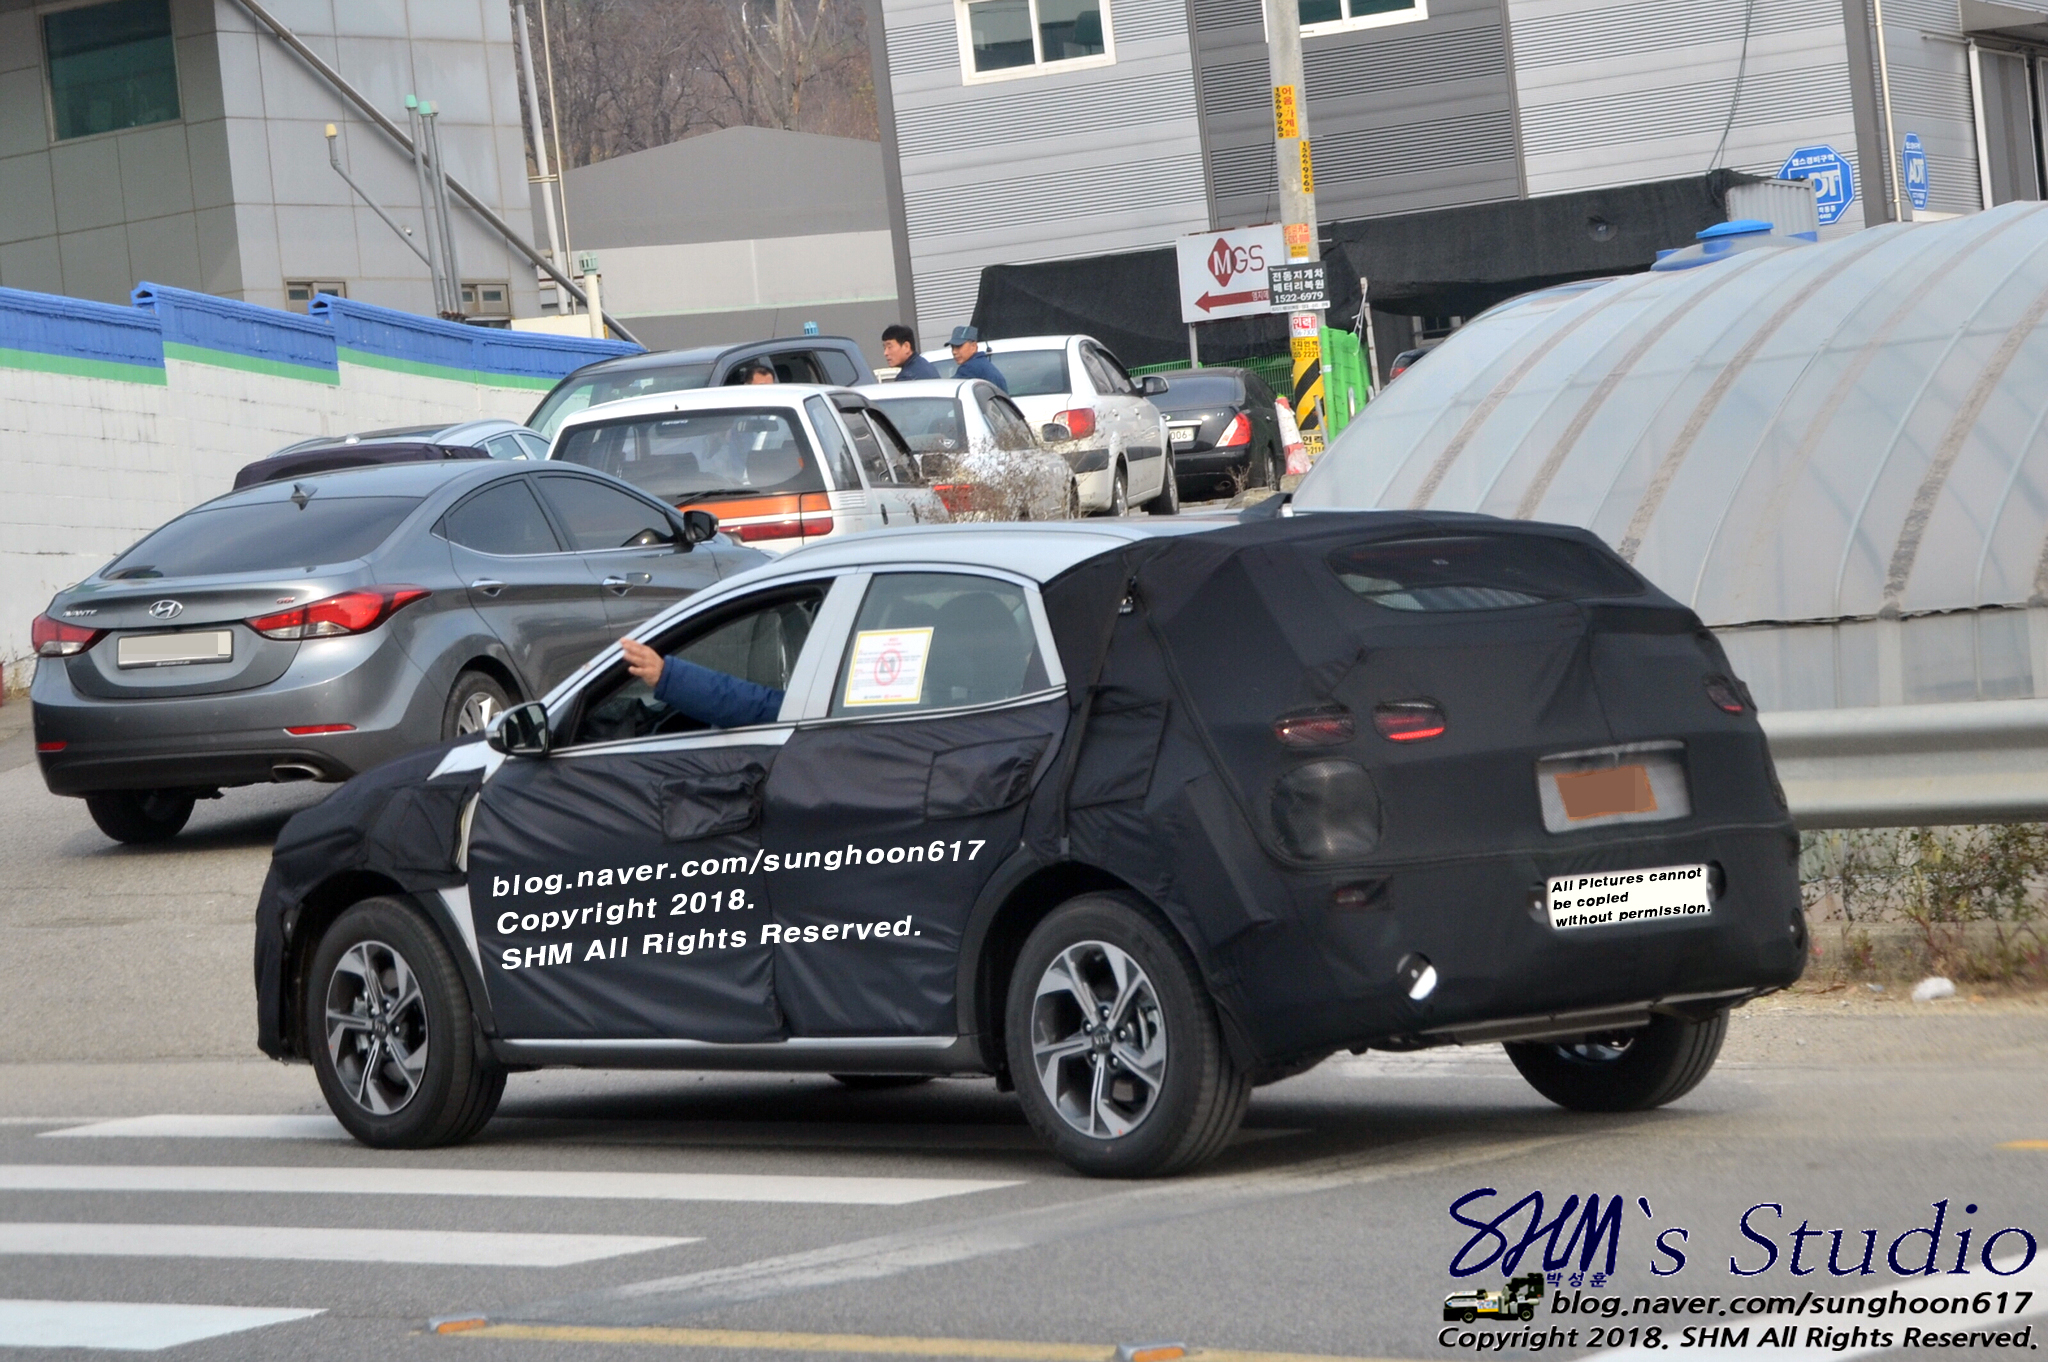 2019 Kia Ceed SUV Spied in South Korea